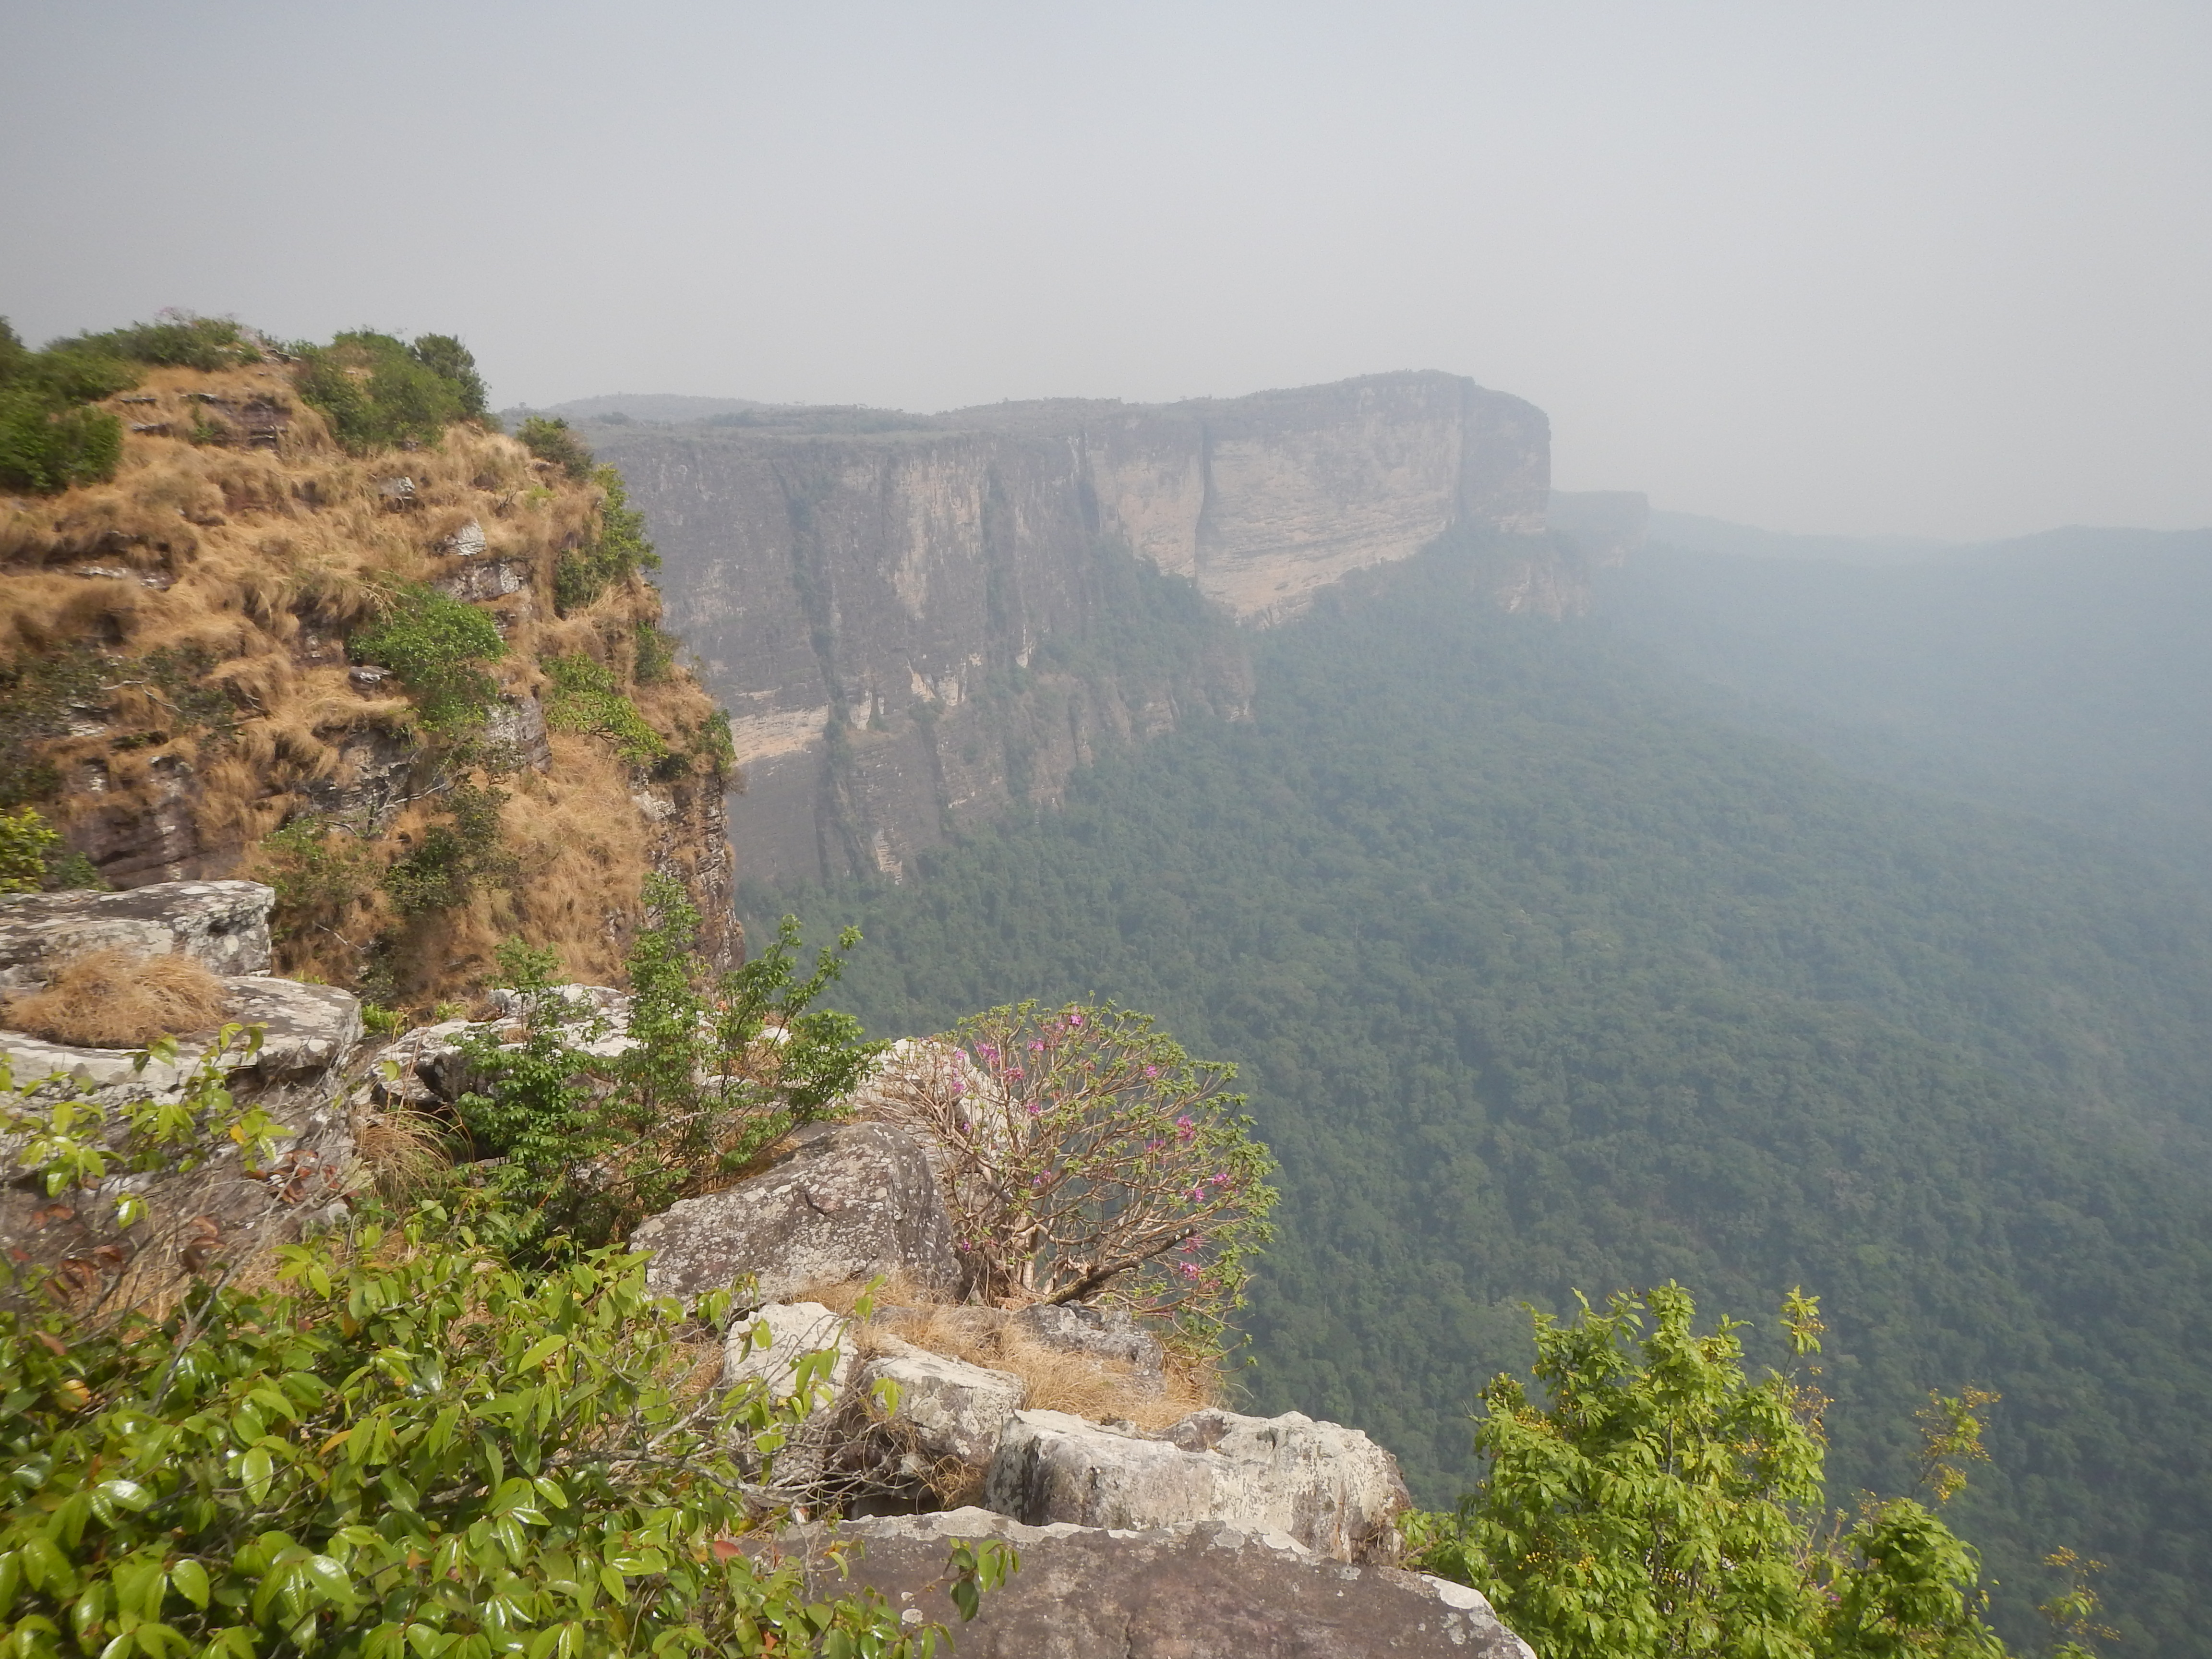 A mountain in Guinea which supports 8 globally unique plant species